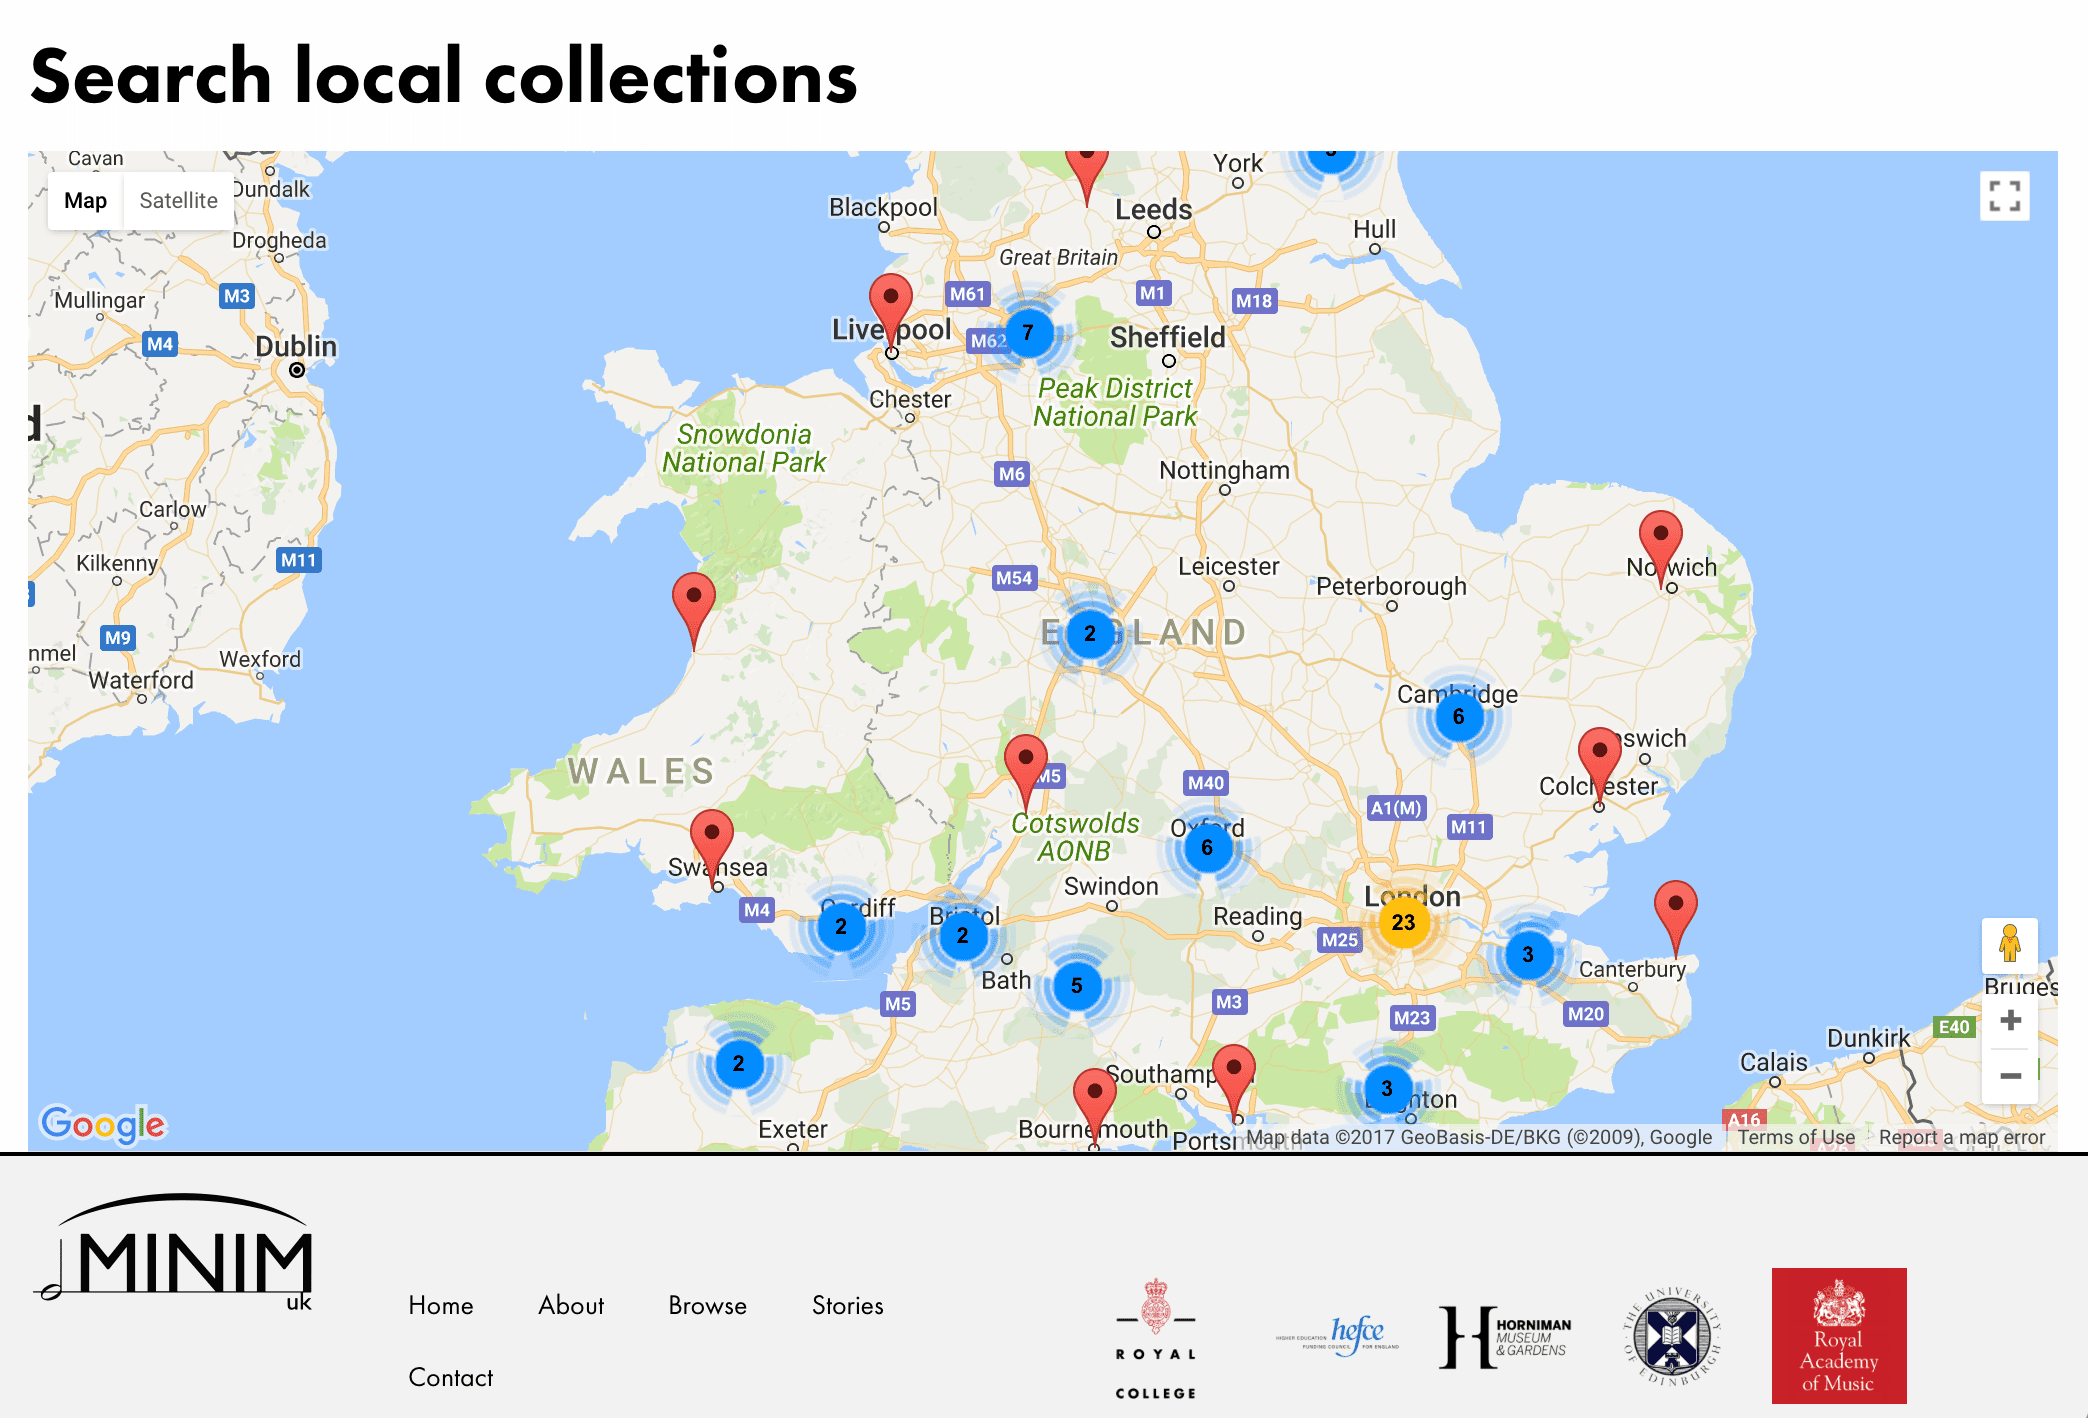 Map of UK with collections pinpointed